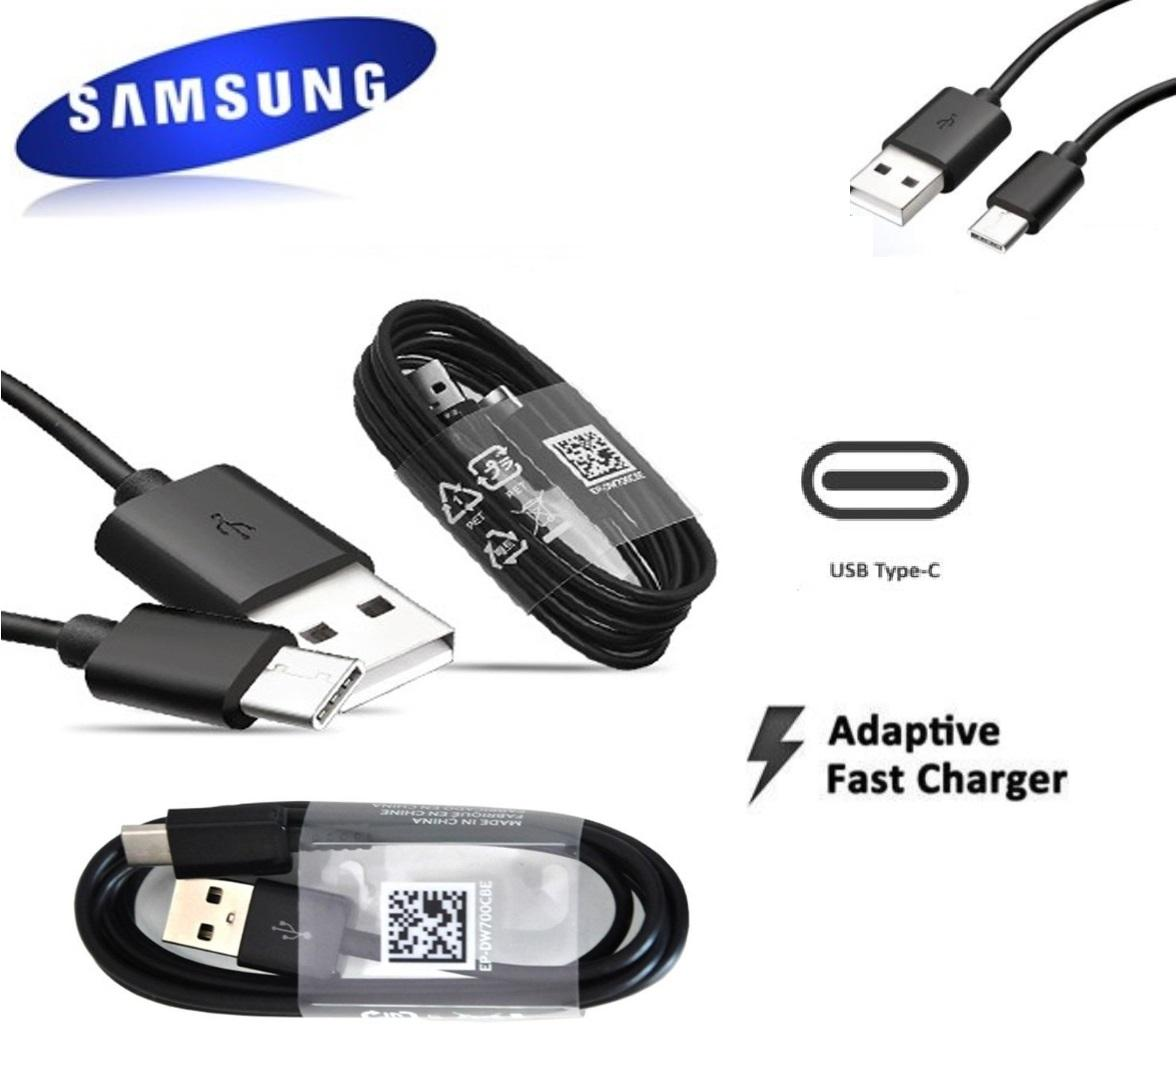 Buy Cables Accessories Converters Usb Connector Types Original Samsung Fast Charging Type C Cable For Note 8 S8 Plus